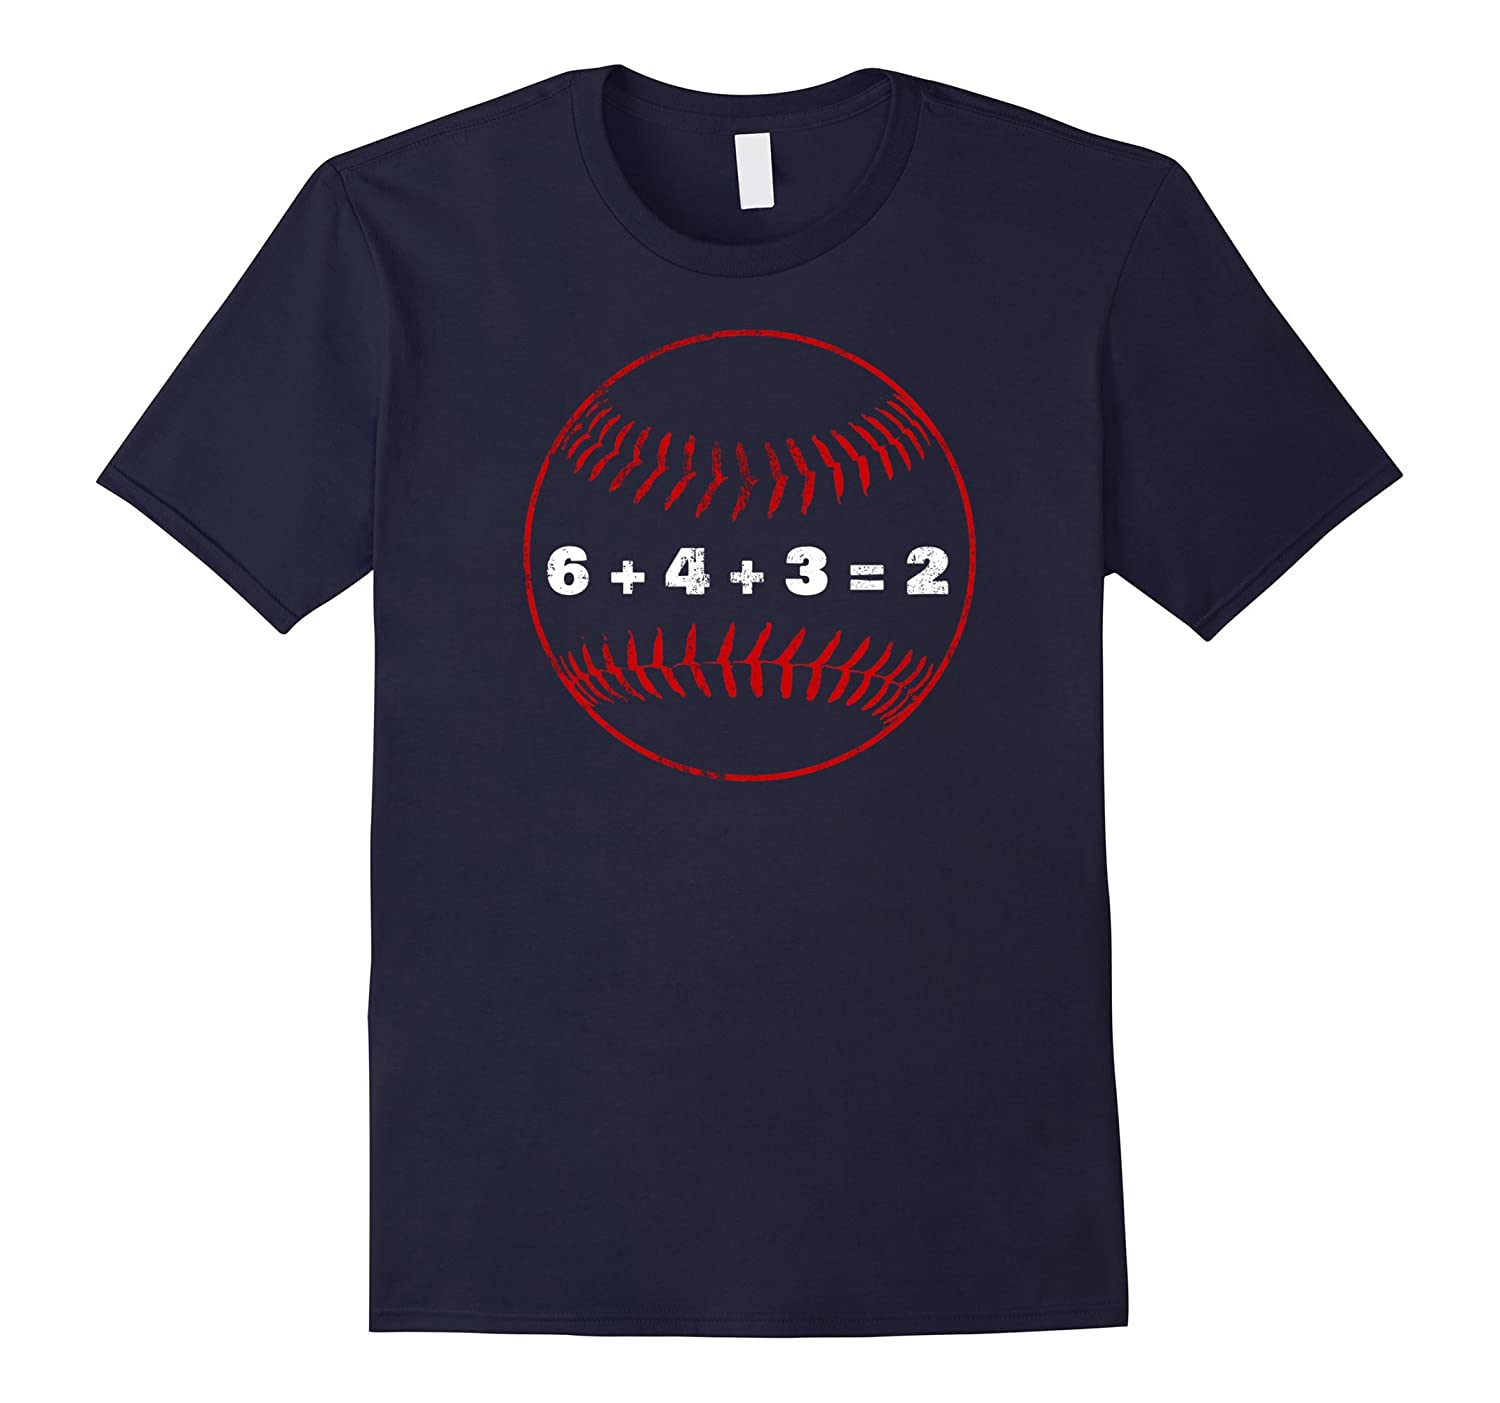 6+4+3=2 Double Play Baseball Player Distressed Tshirt Coach-Art